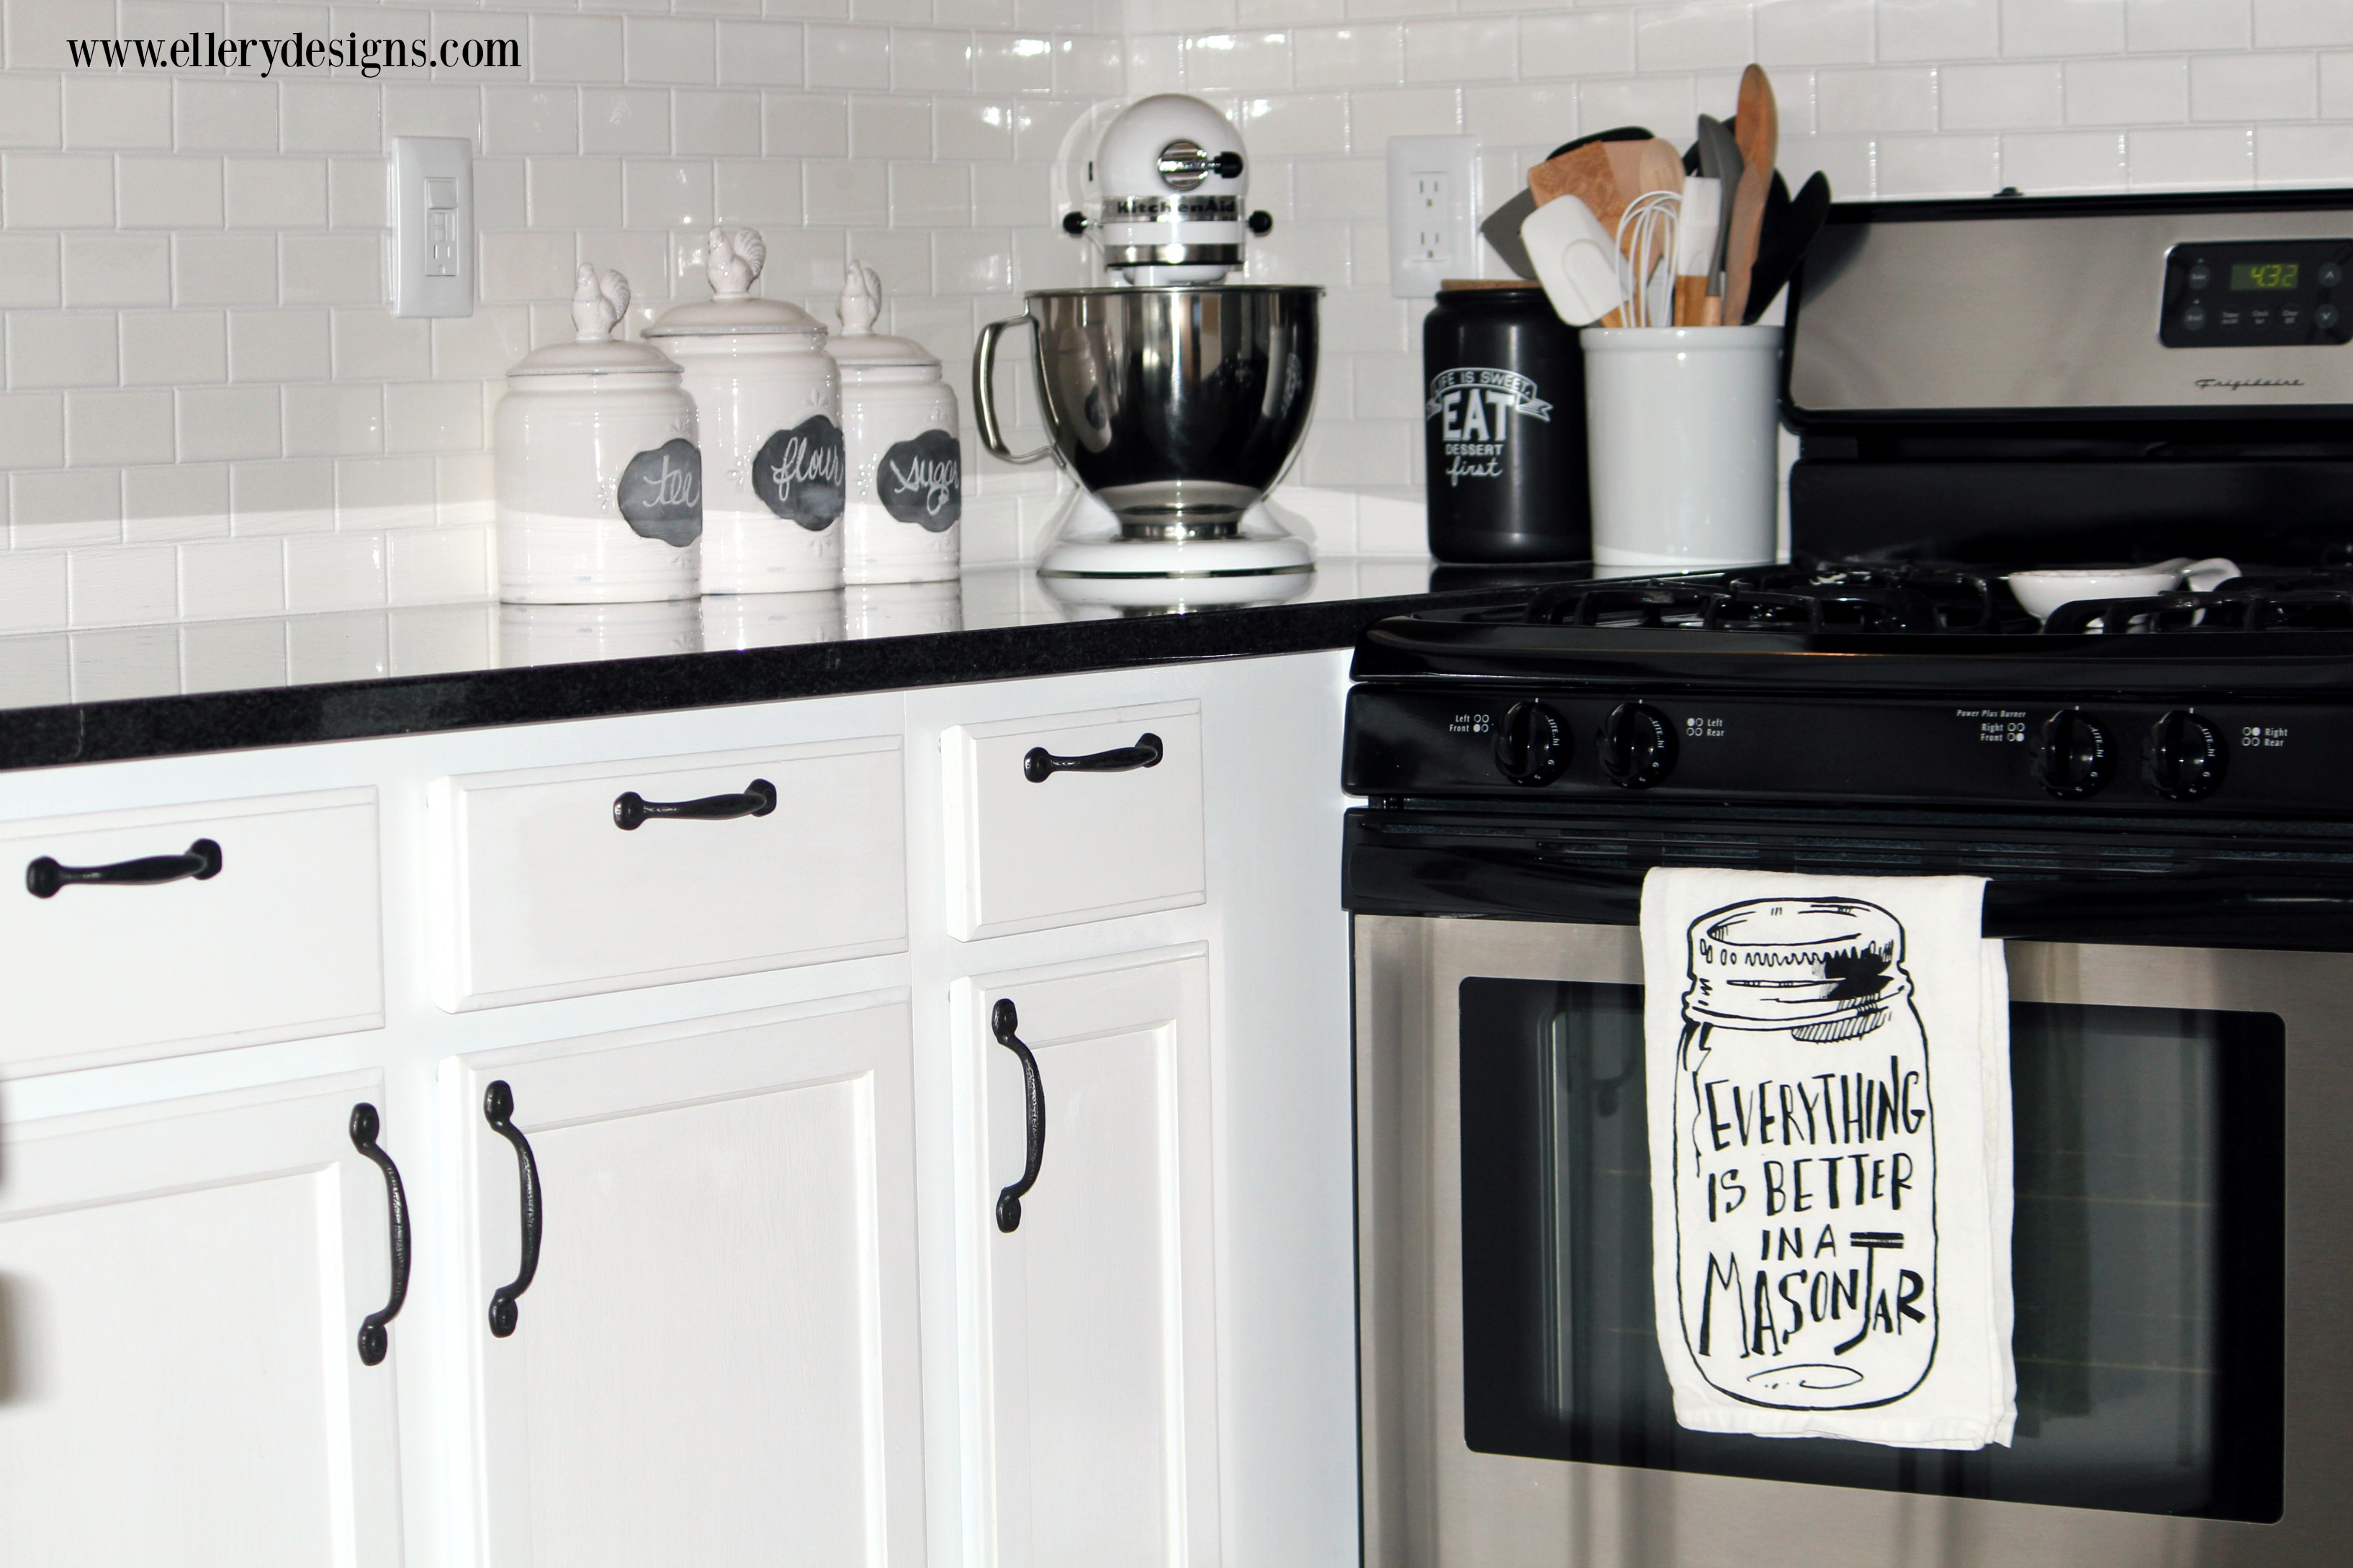 Beautiful White Kitchen Remodel - ElleryDesigns.com